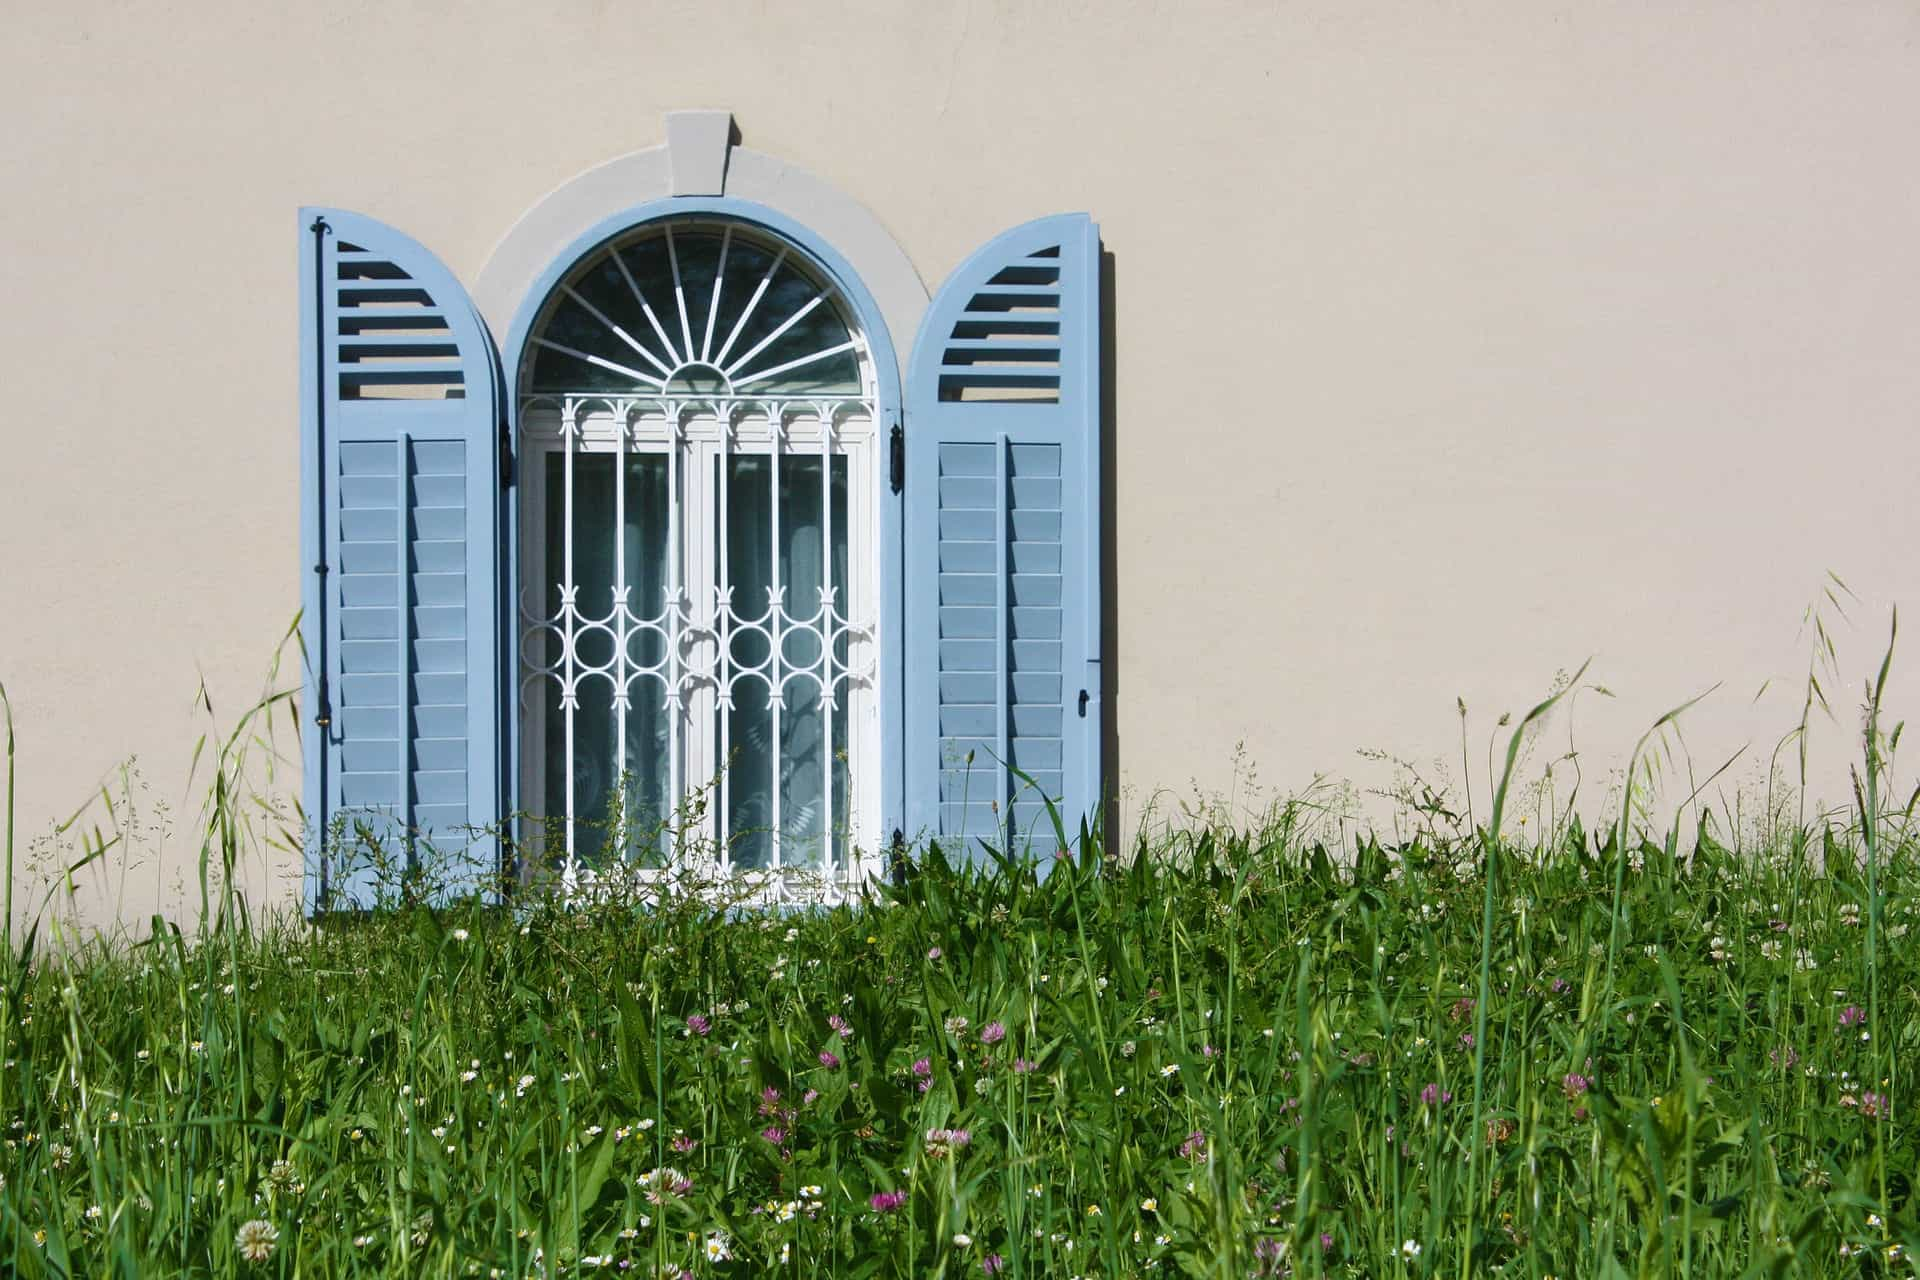 blue window with bars